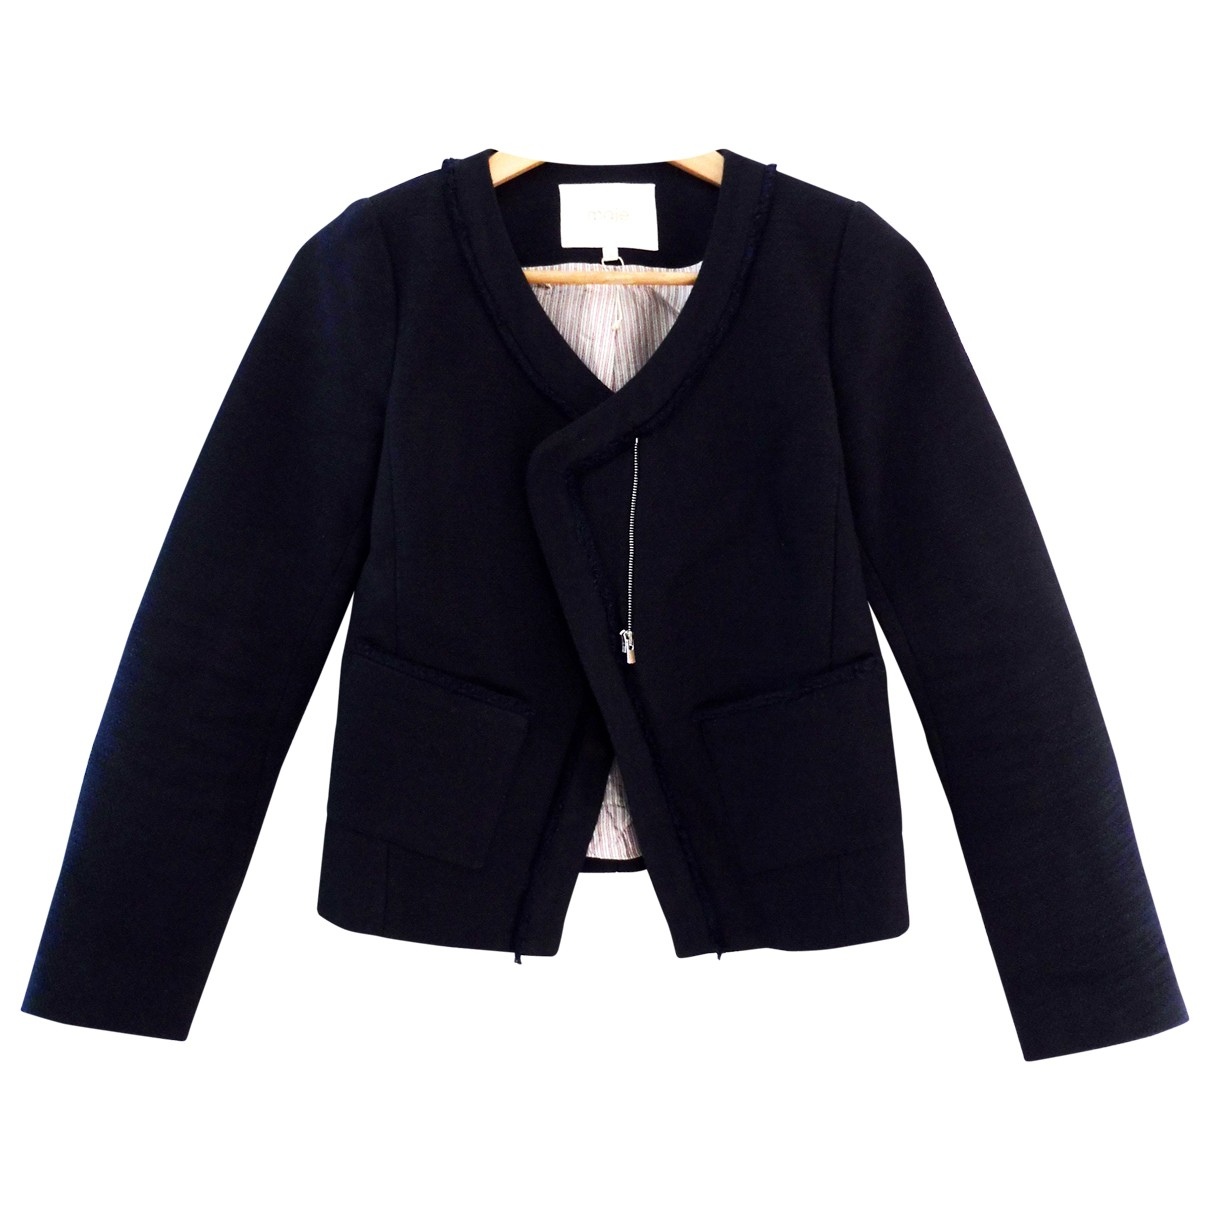 Maje \N Navy Cotton jacket for Women 36 FR